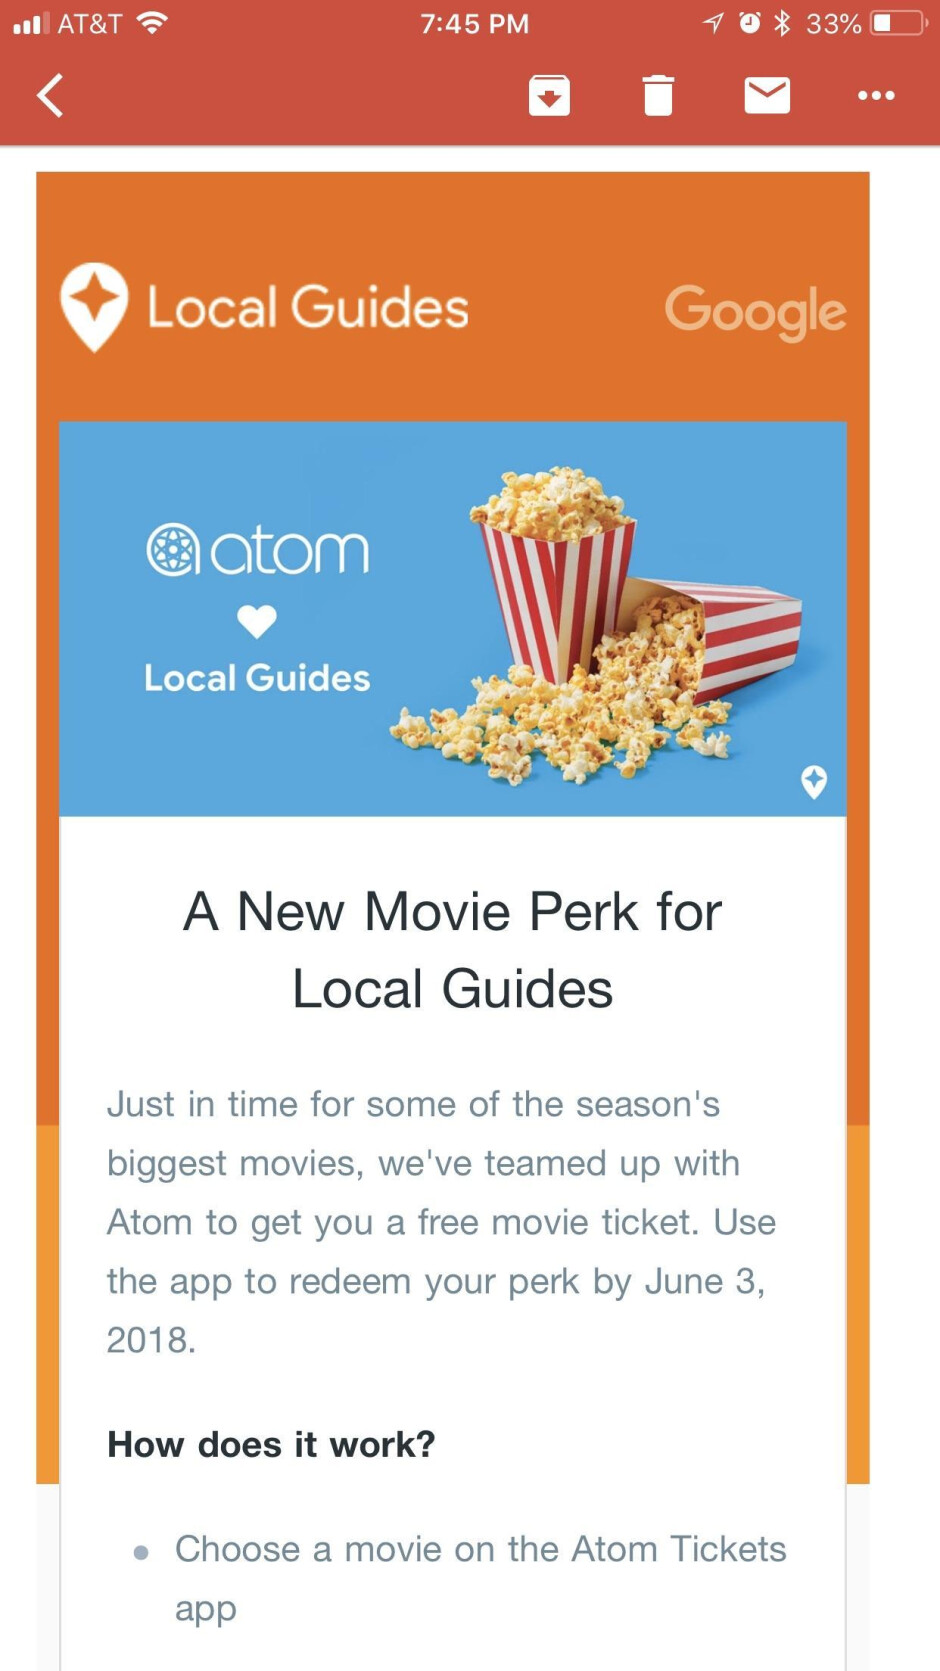 Google's new Local Guides reward initiative involves discounts on movie tickets - Google is giving away discount codes for movie tickets to Local Guides